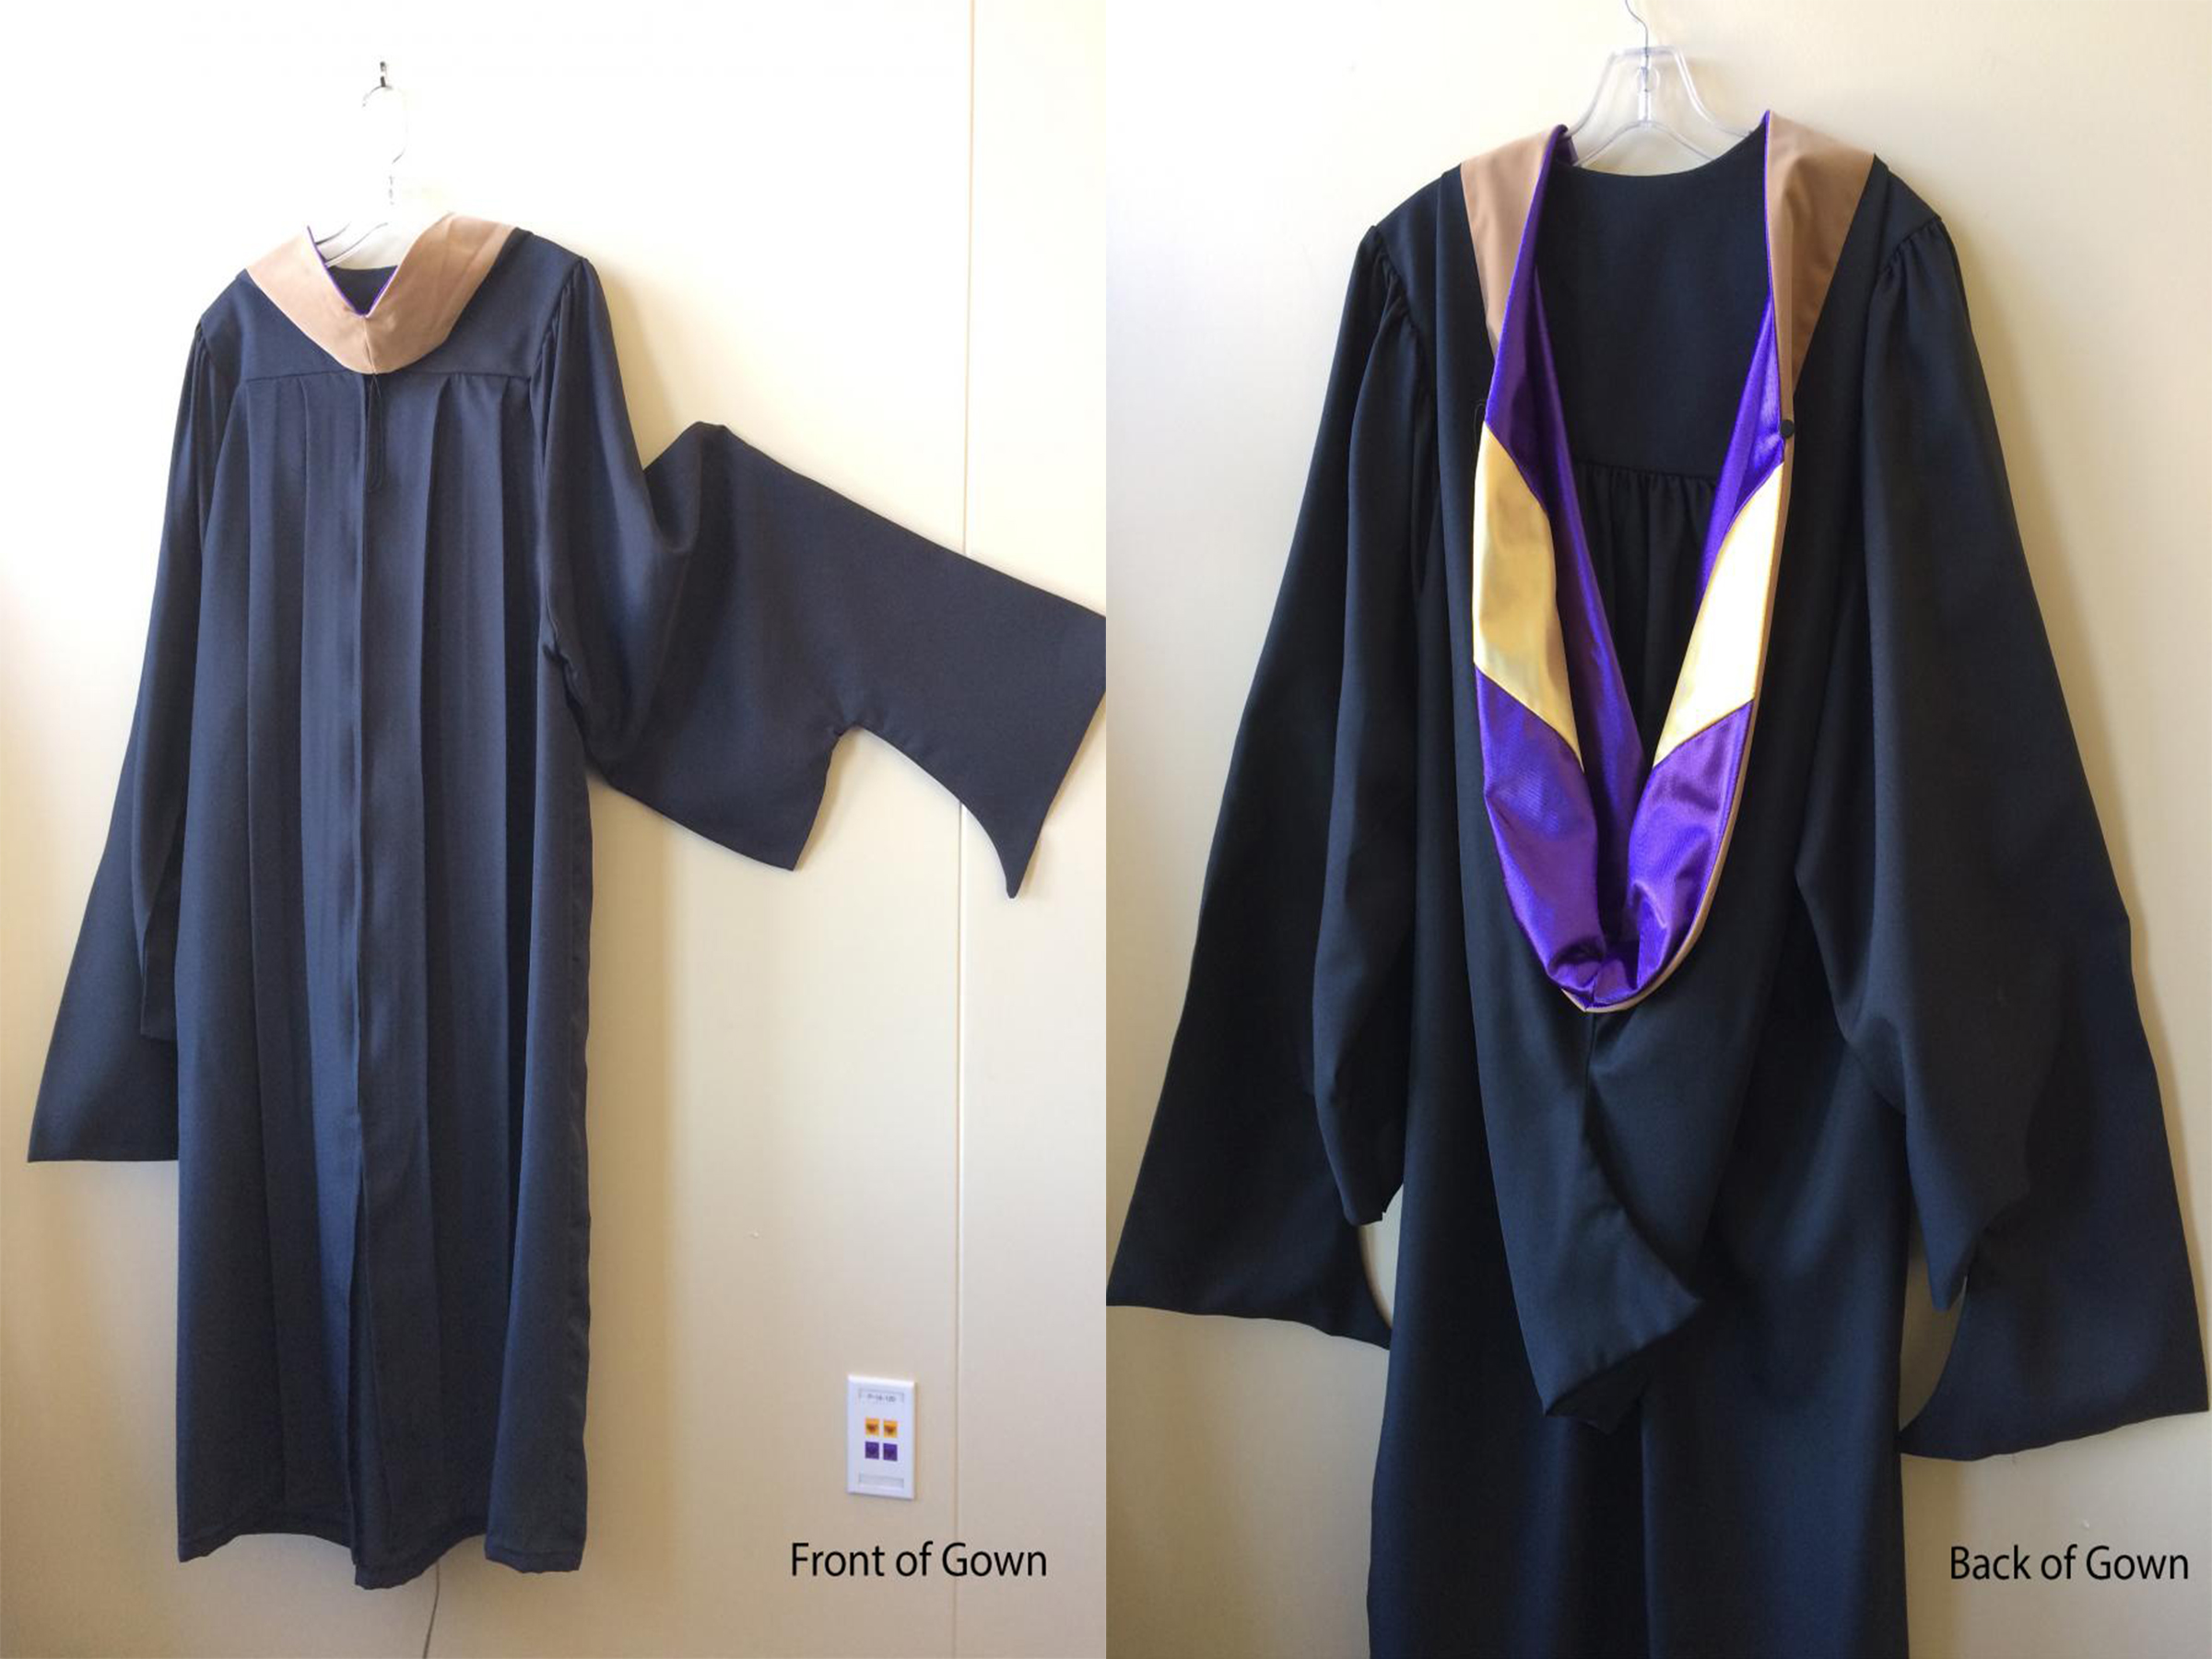 The front and back of the graduate regalia clothing